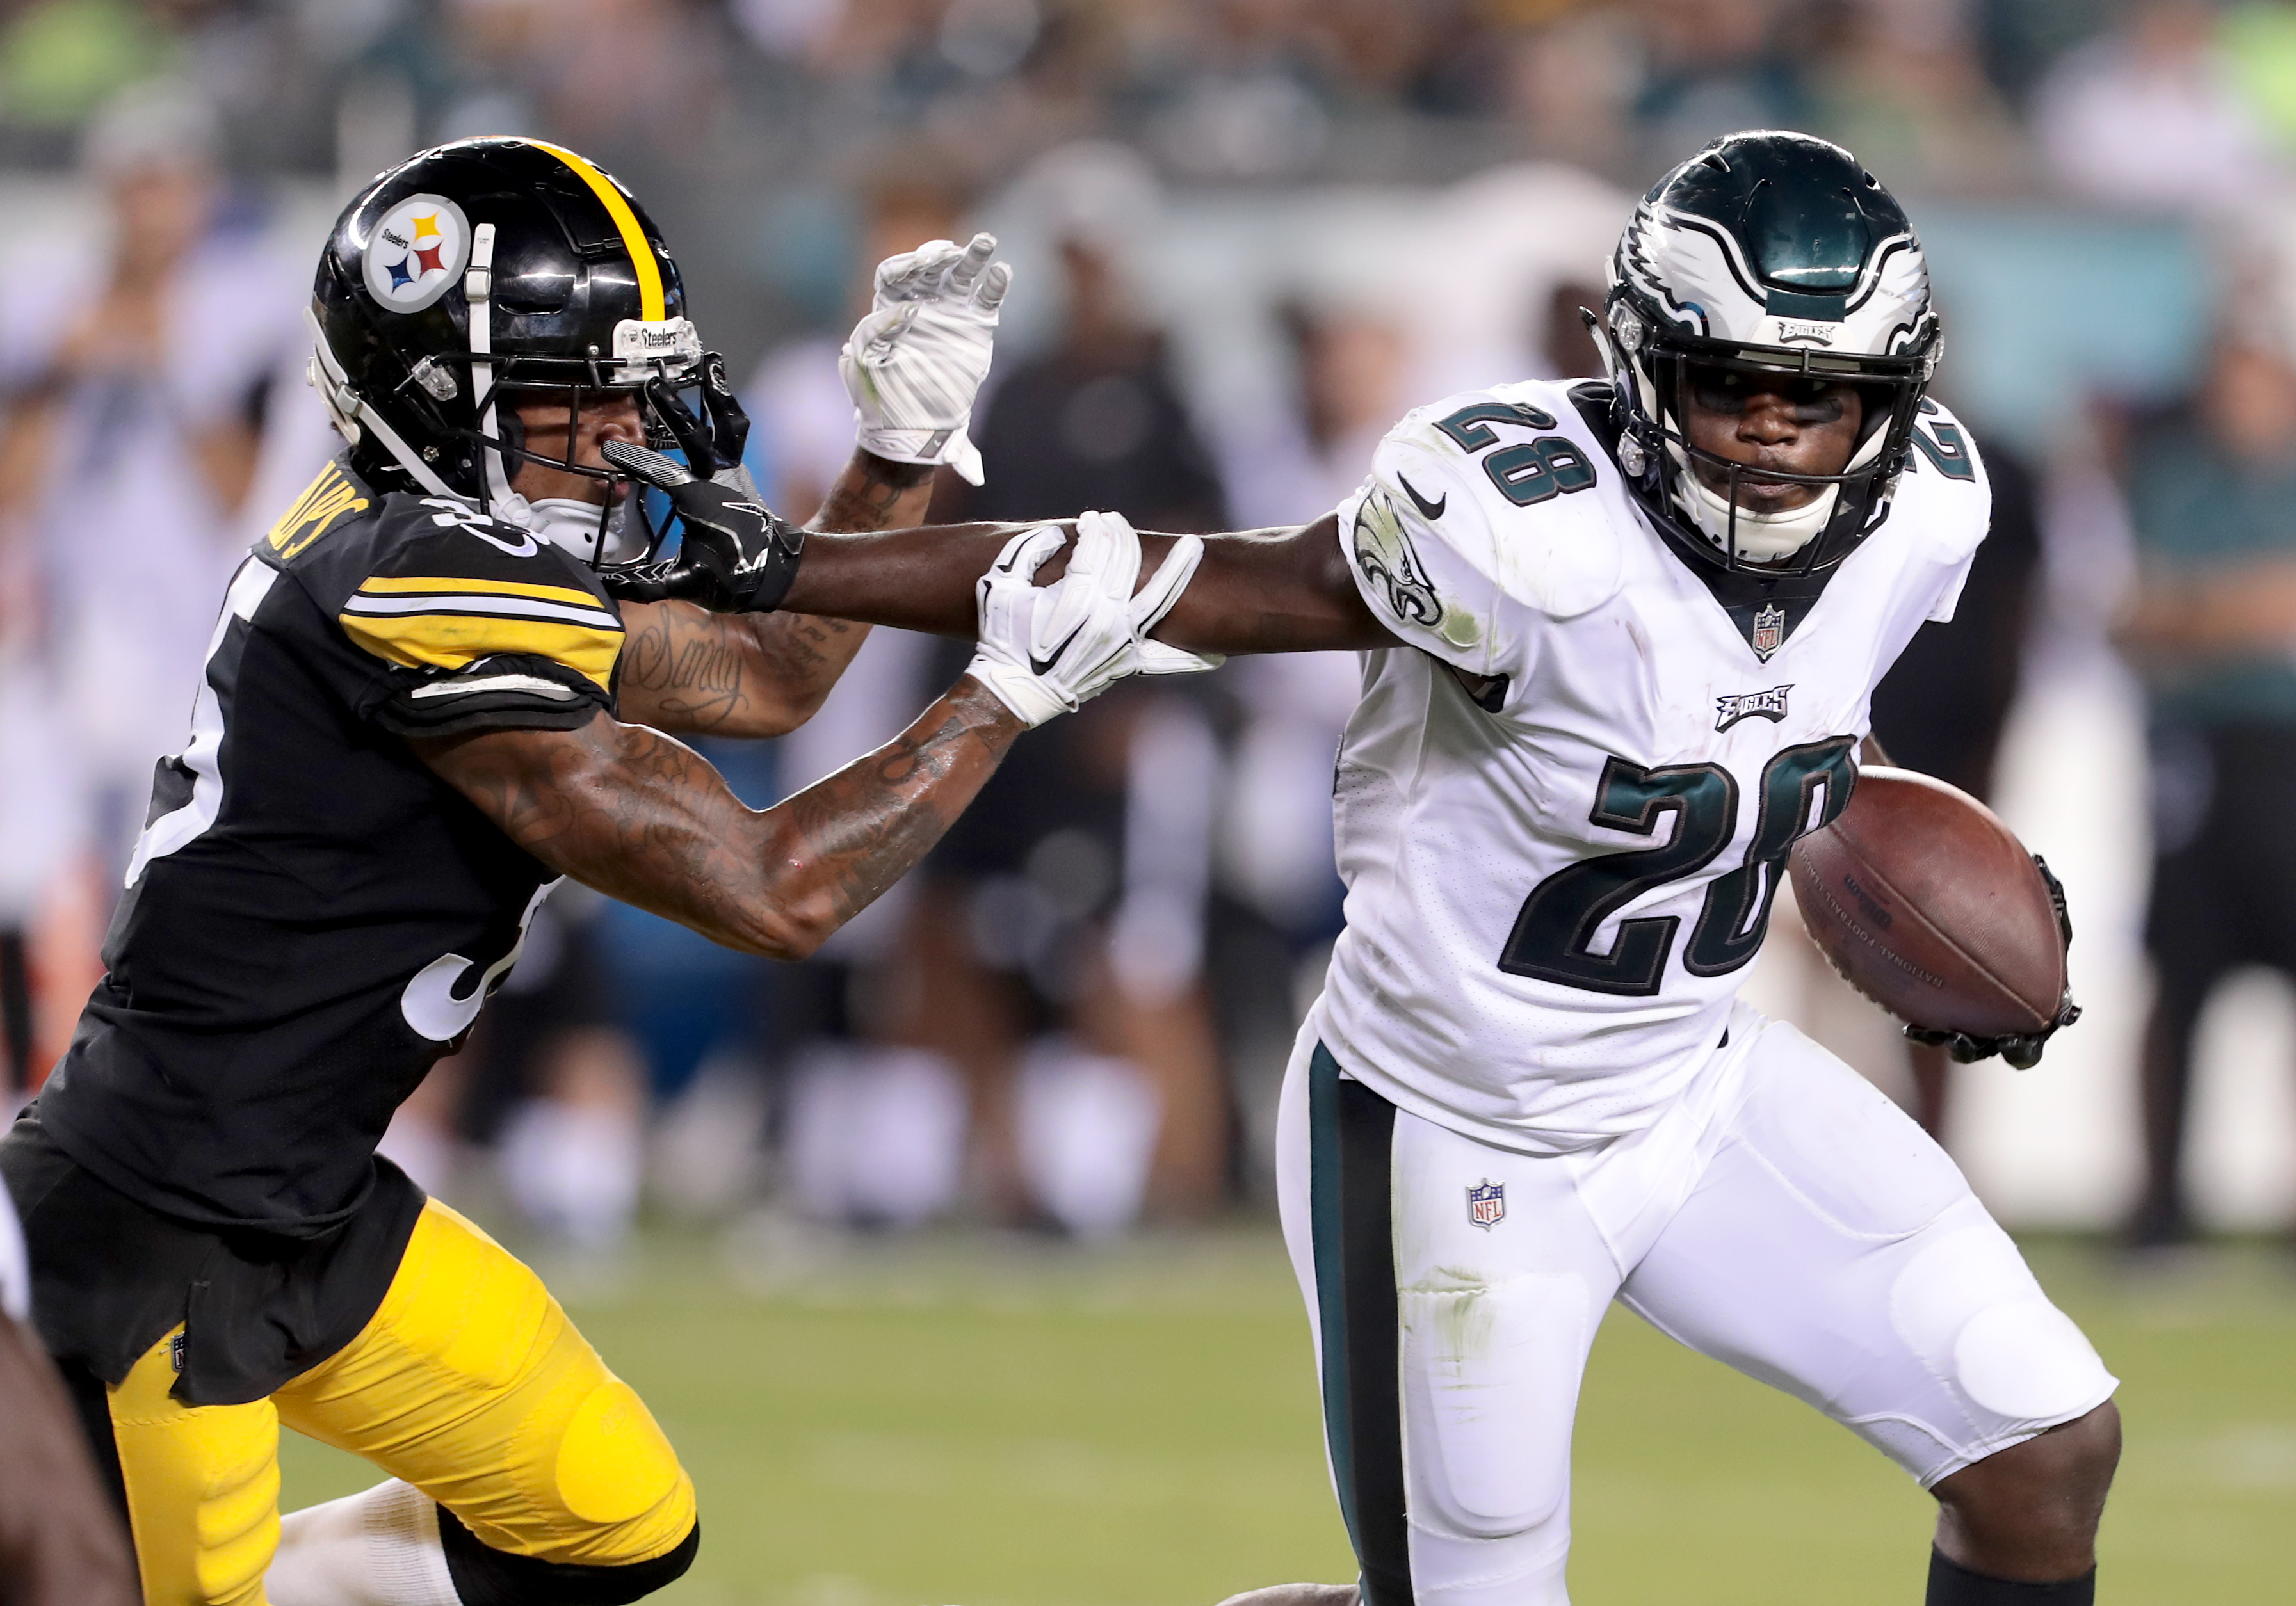 NFL schedule 2020: Who are Eagles' opponents NEXT year? A look ahead at slate that includes Steelers, Cardinals, Rams